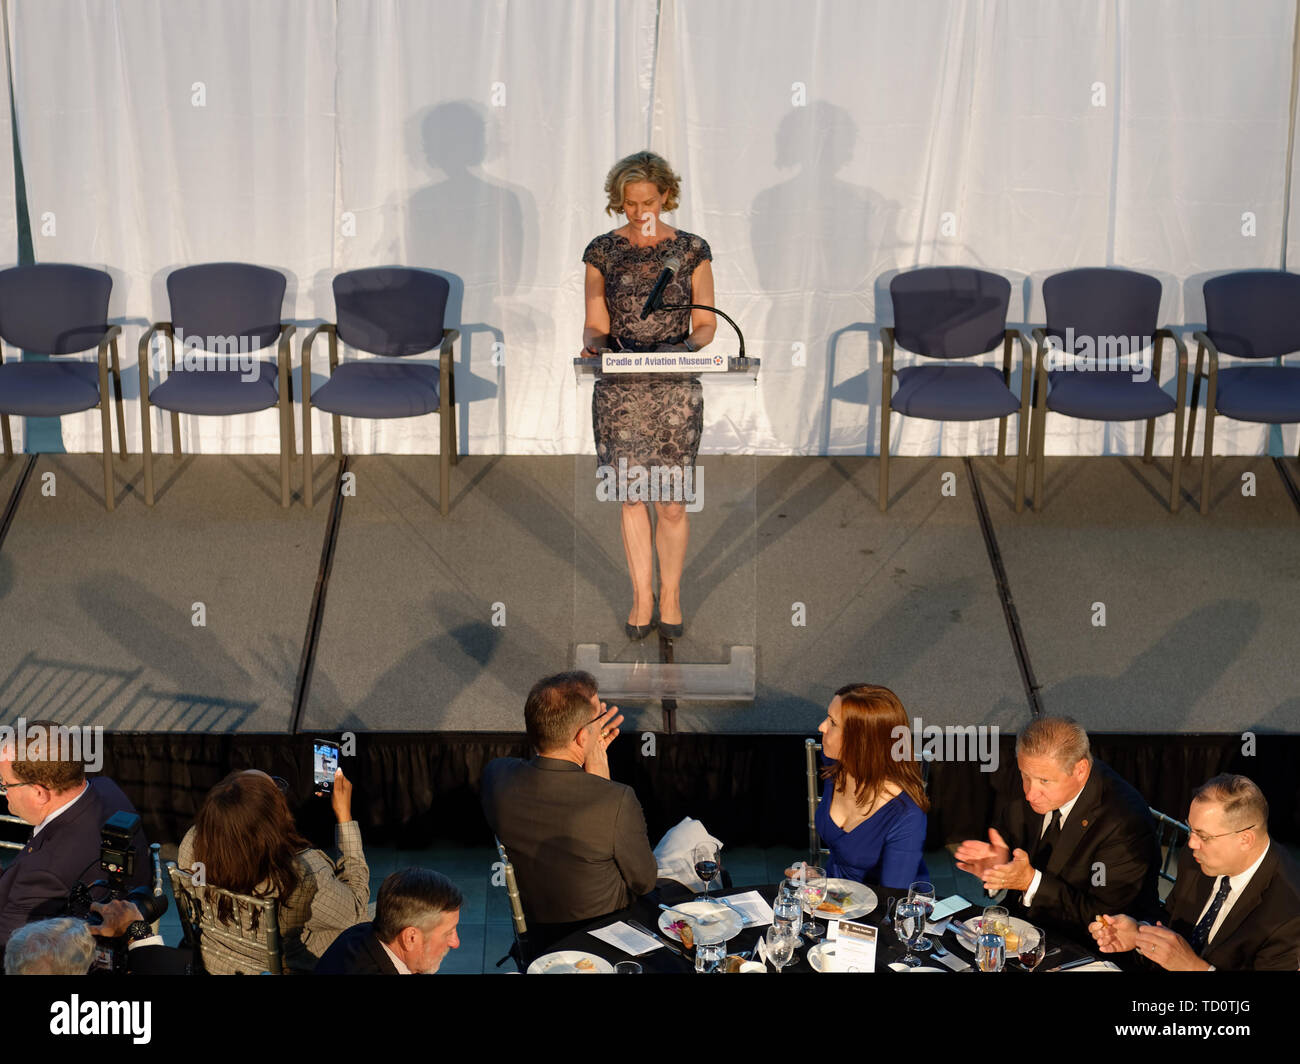 Garden City, New York, USA. 6th June, 2019. Nassau County Executive LAURA GILLEN is speaking on stage below, as seen from second level of atrium of Cradle of Aviation Museum, during Apollo at 50 Anniversary Dinner, an Apollo astronaut tribute celebrating the Apollo 11 mission Moon landing. Credit: Ann Parry/ZUMA Wire/Alamy Live News - Stock Image